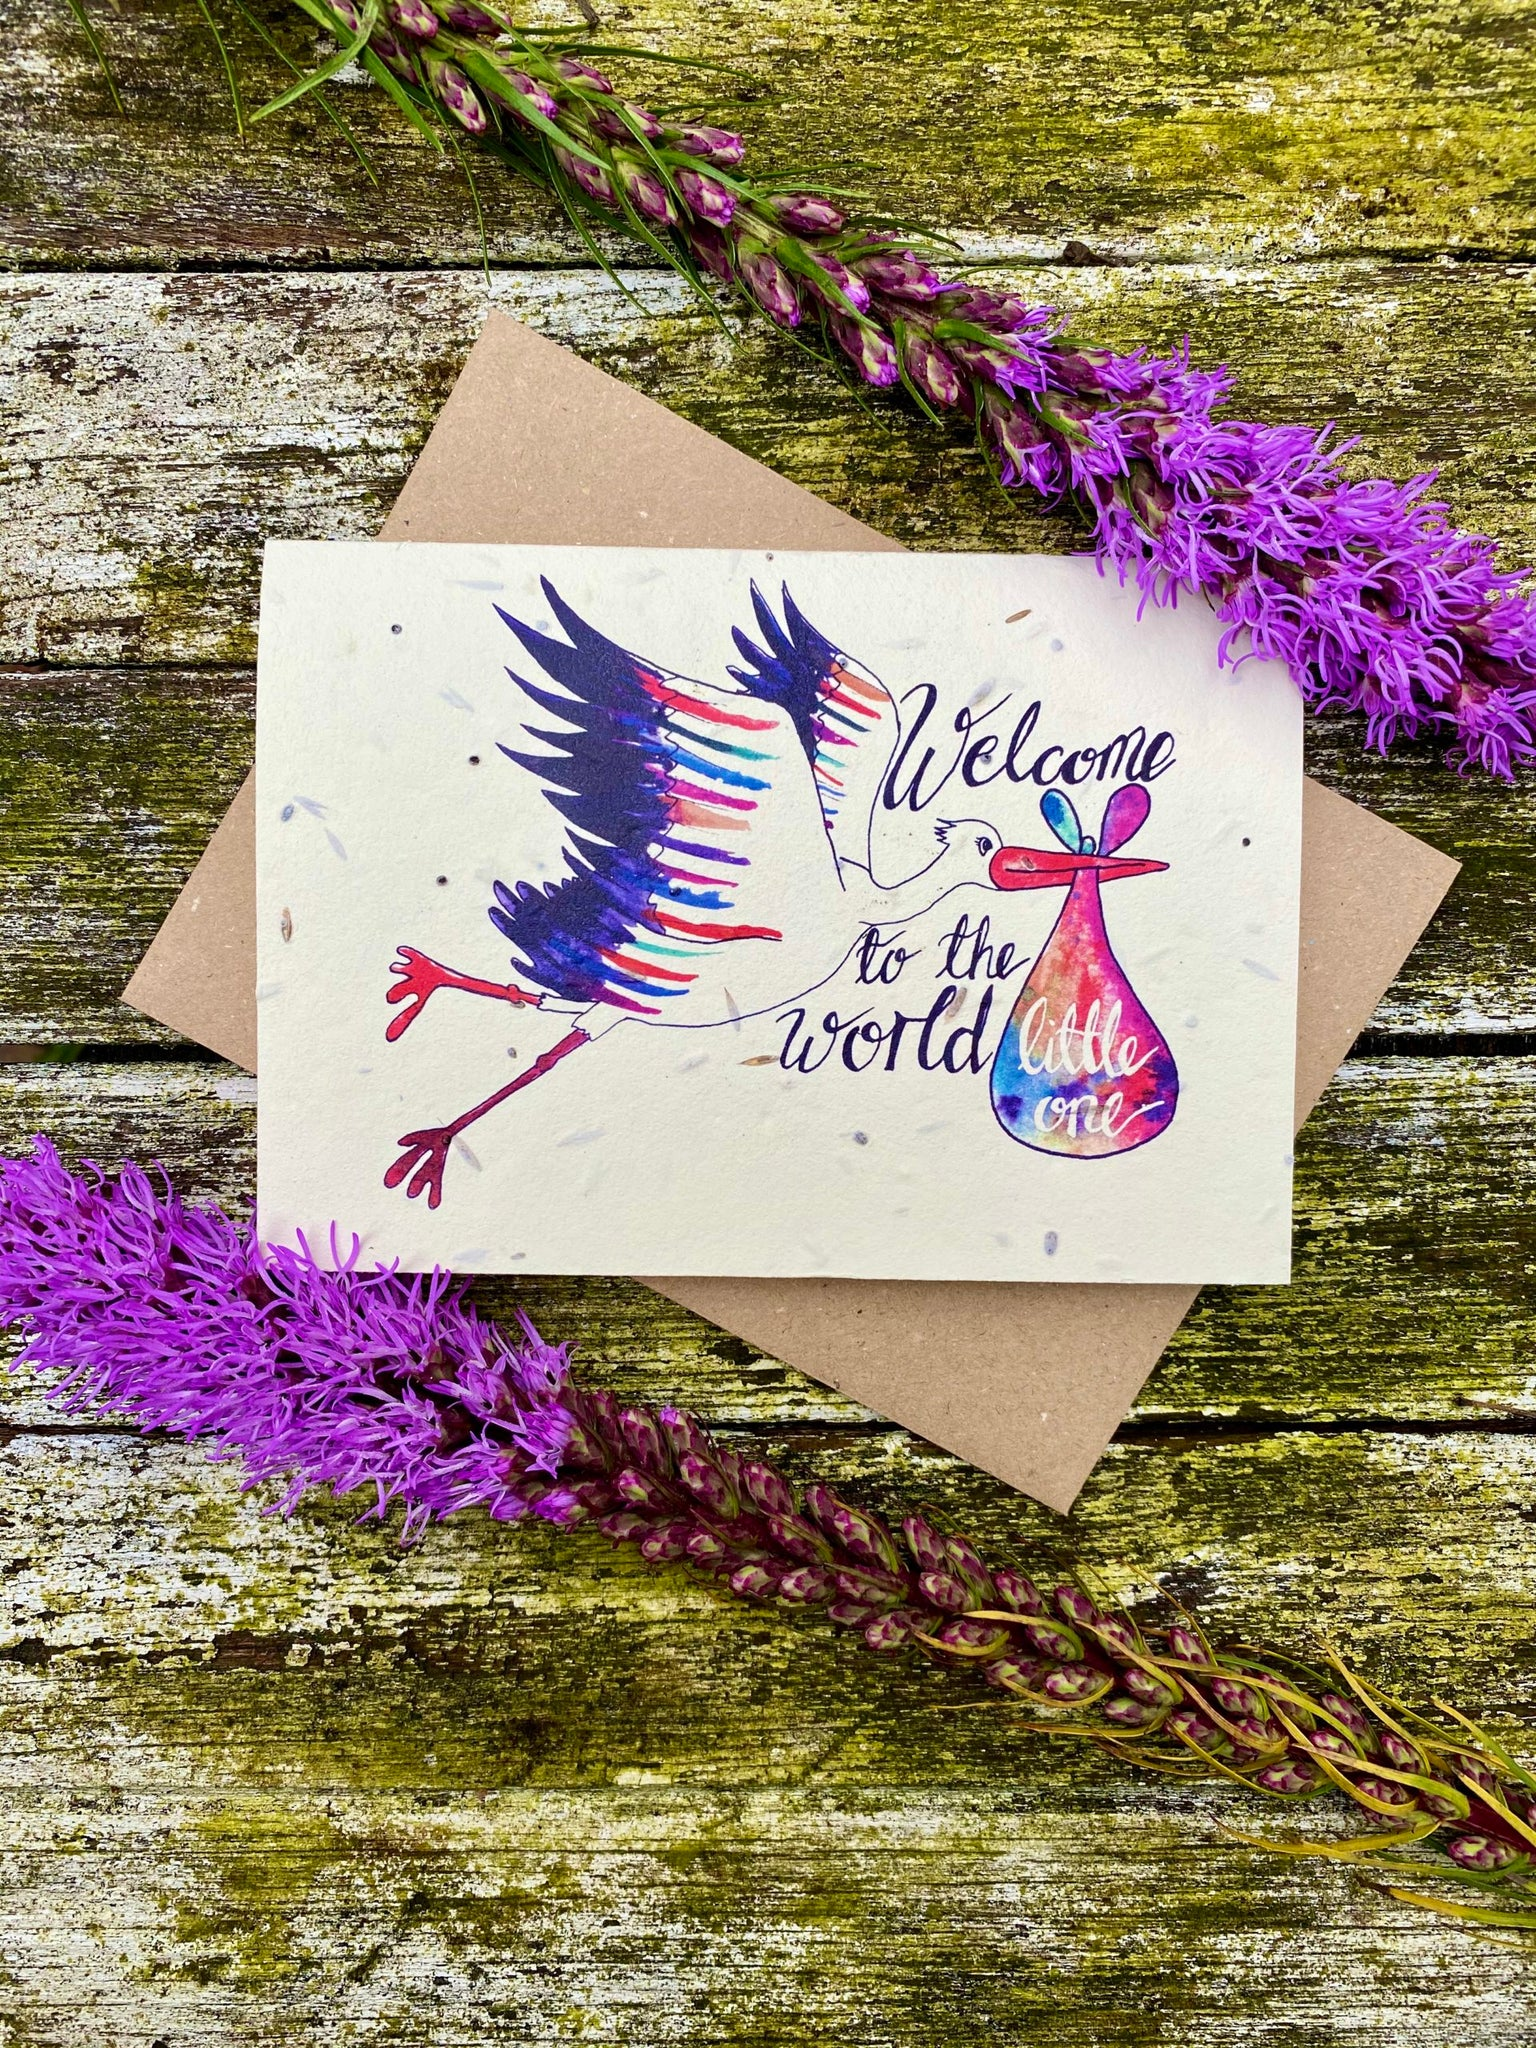 Plantable Wildflower Cards: Welcome to the World Little One